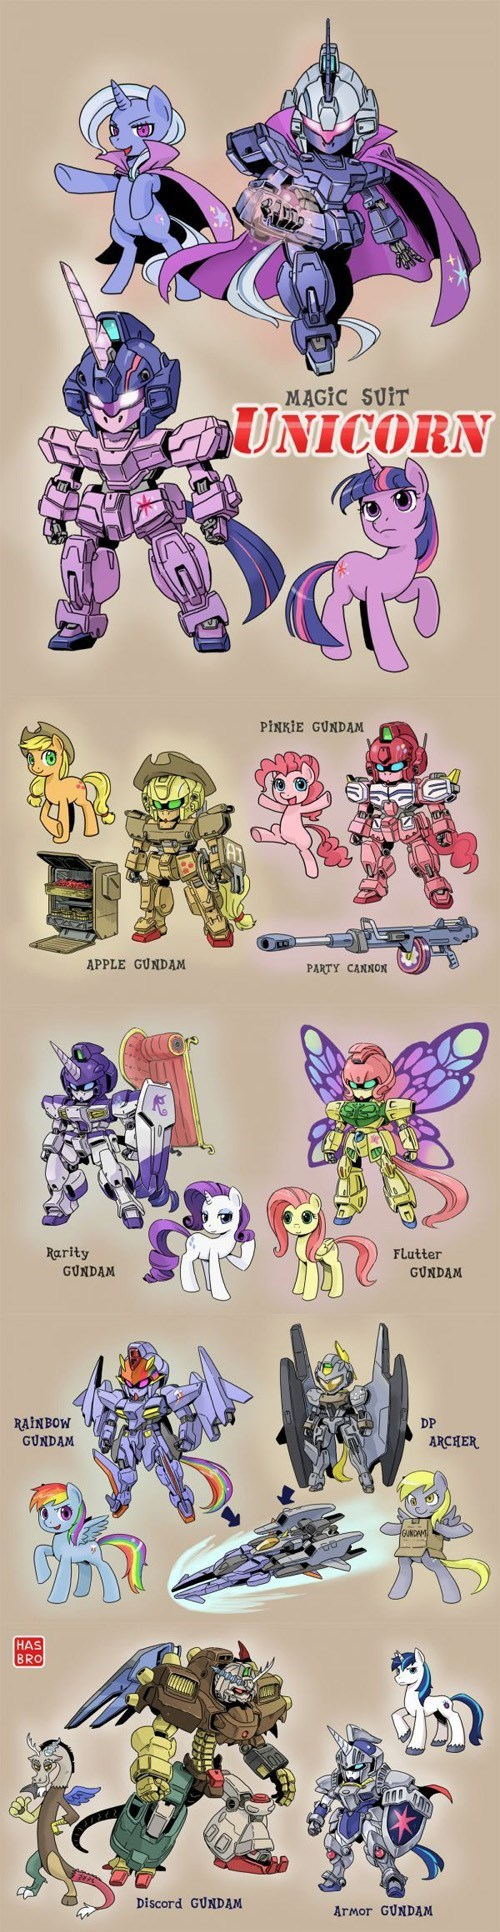 mashup gundam Fan Art my little pony friendship is magic - 7027363328